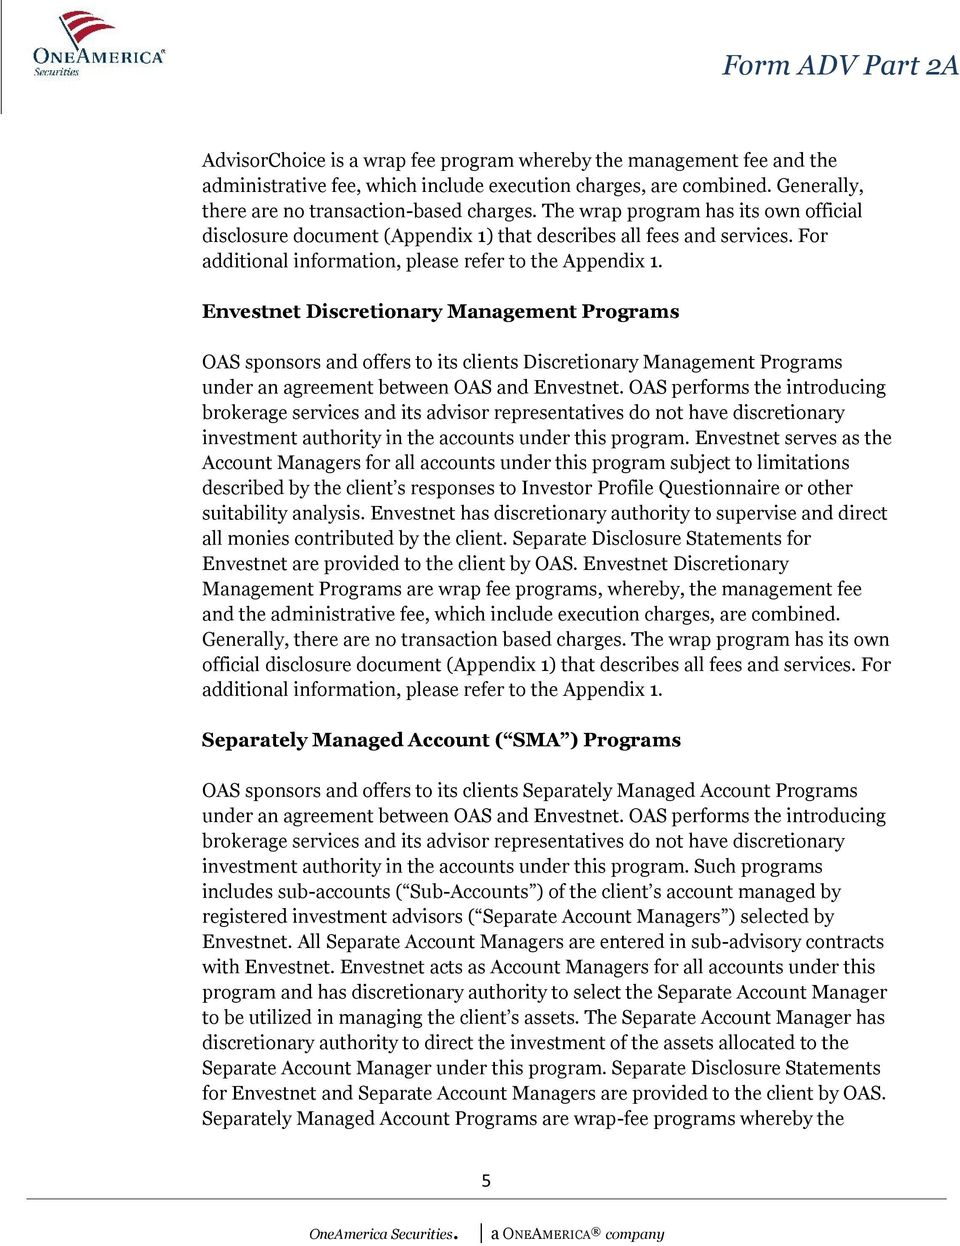 Envestnet Discretionary Management Programs OAS sponsors and offers to its clients Discretionary Management Programs under an agreement between OAS and Envestnet.